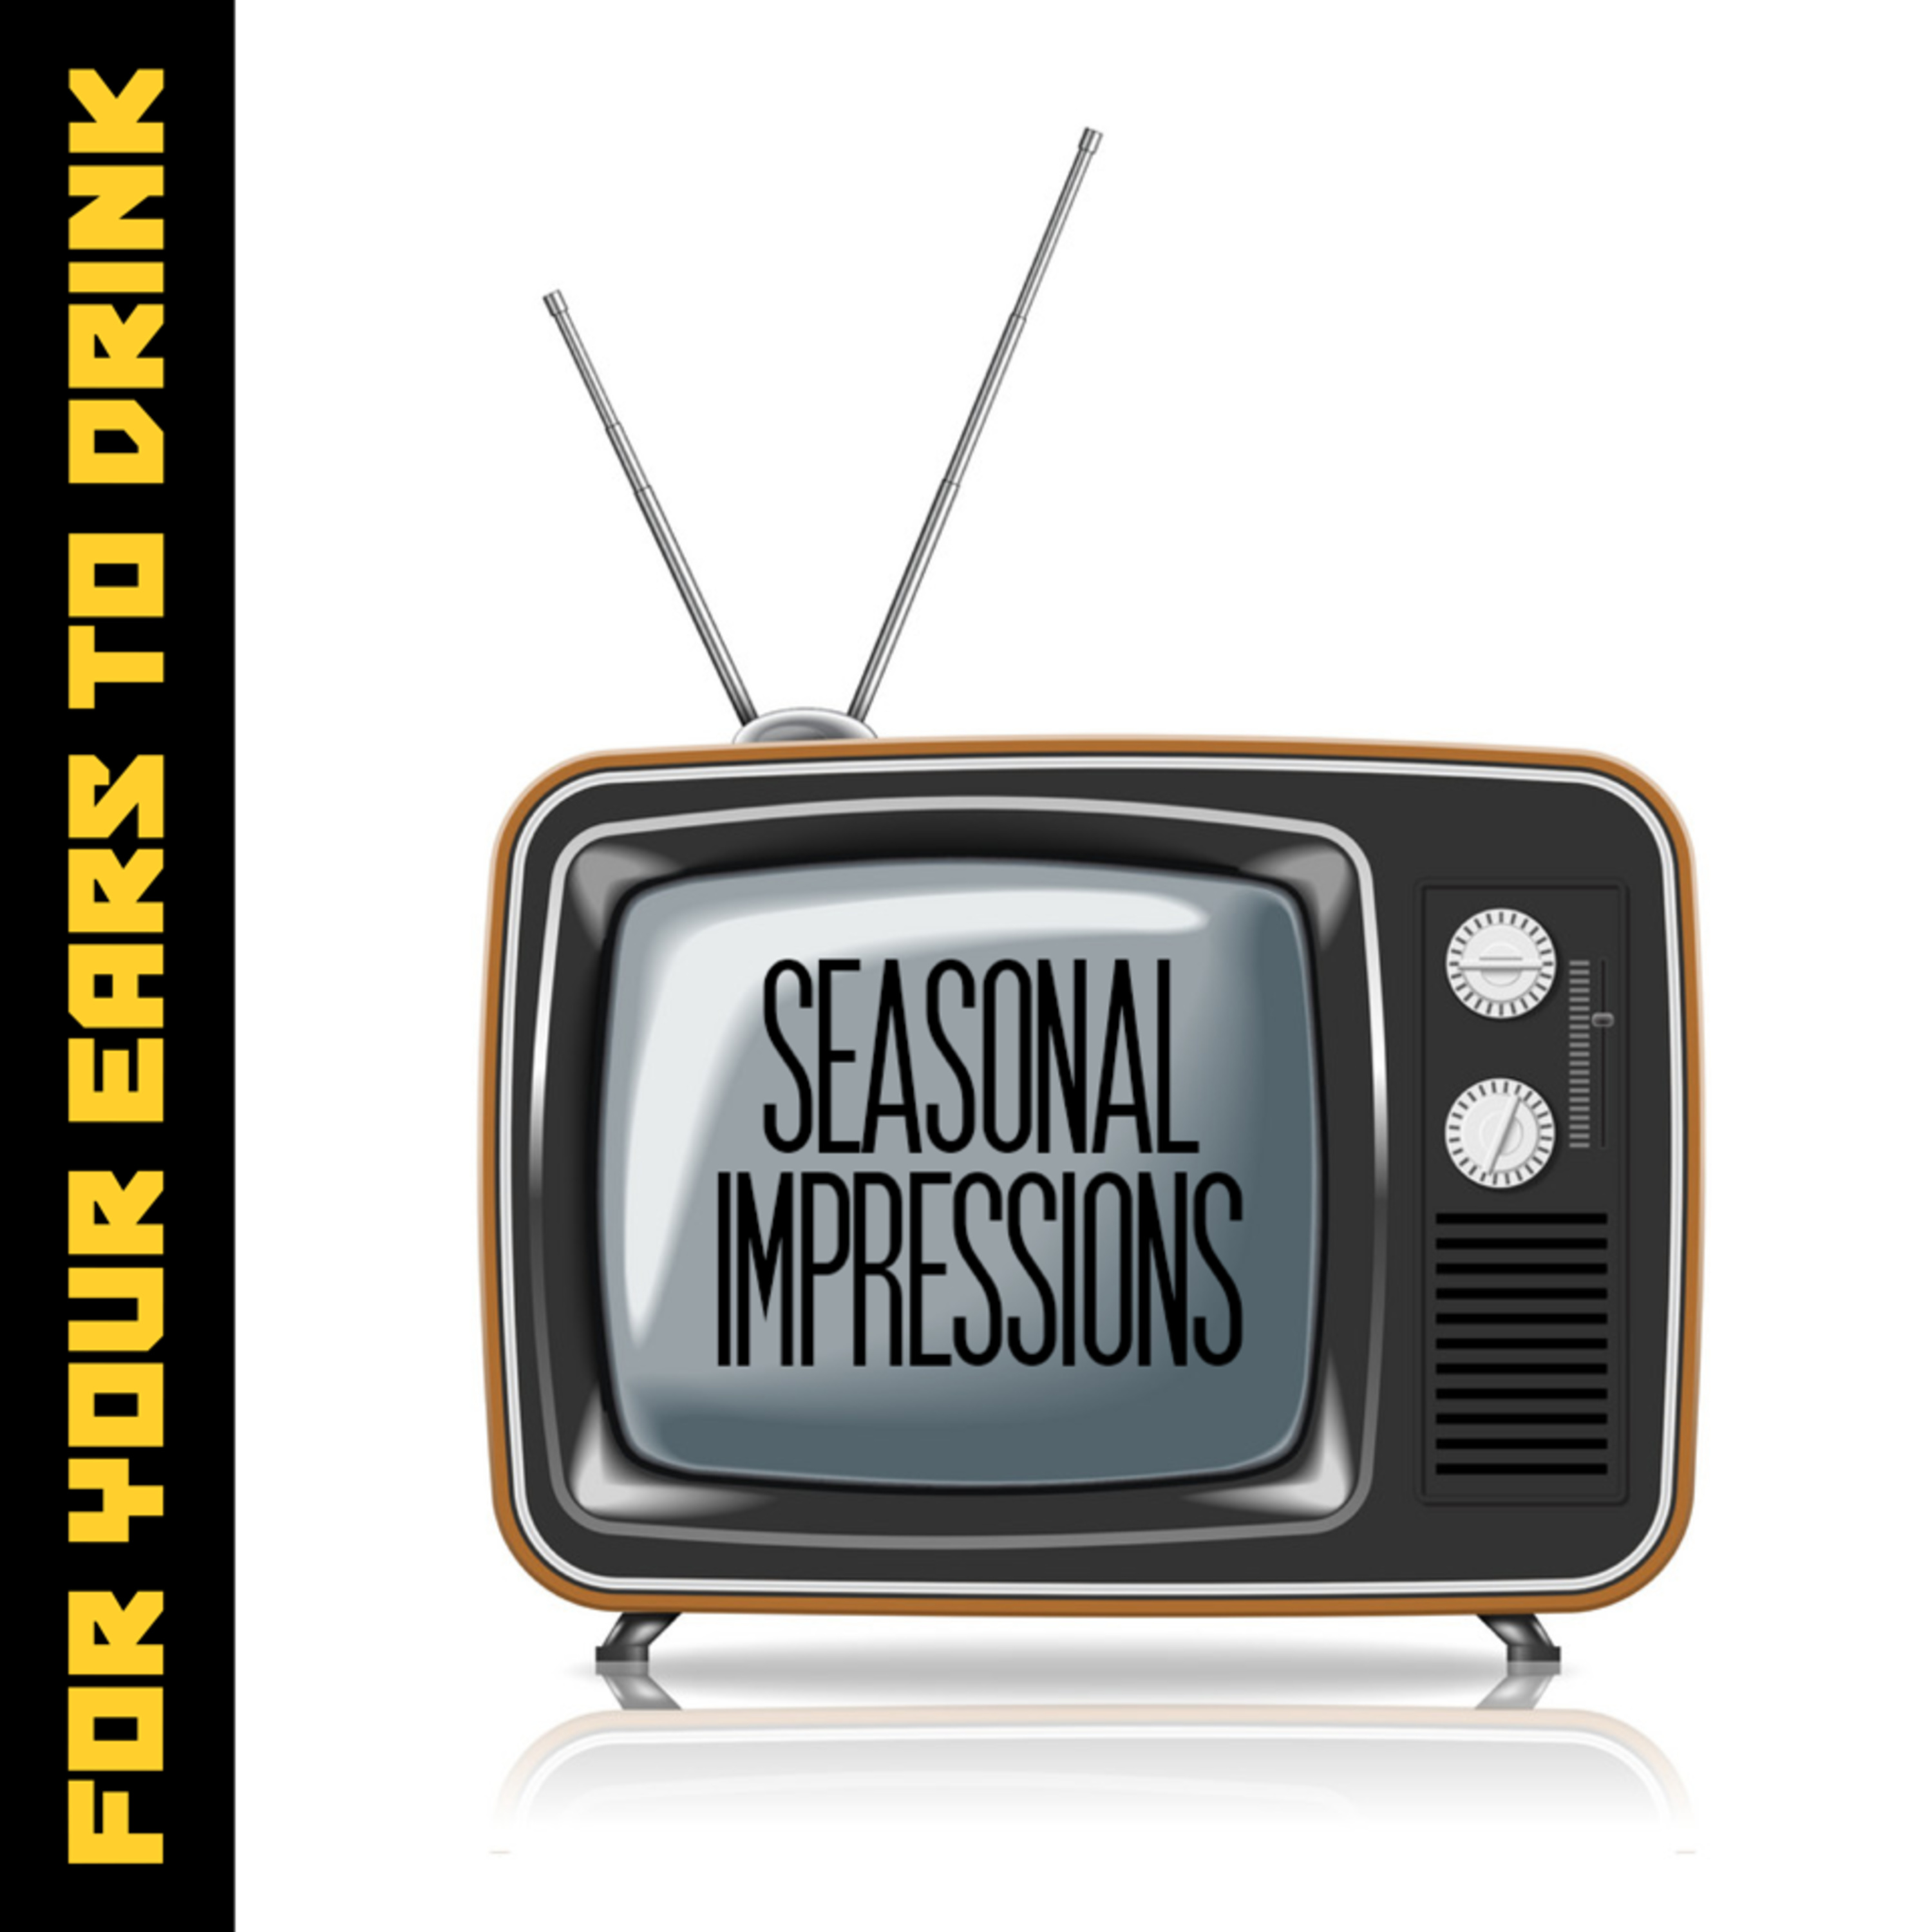 Seasonal Impressions - Episode 9: Game Of Thrones Season 2 - Big Daddy Lannister and A Man is A Man